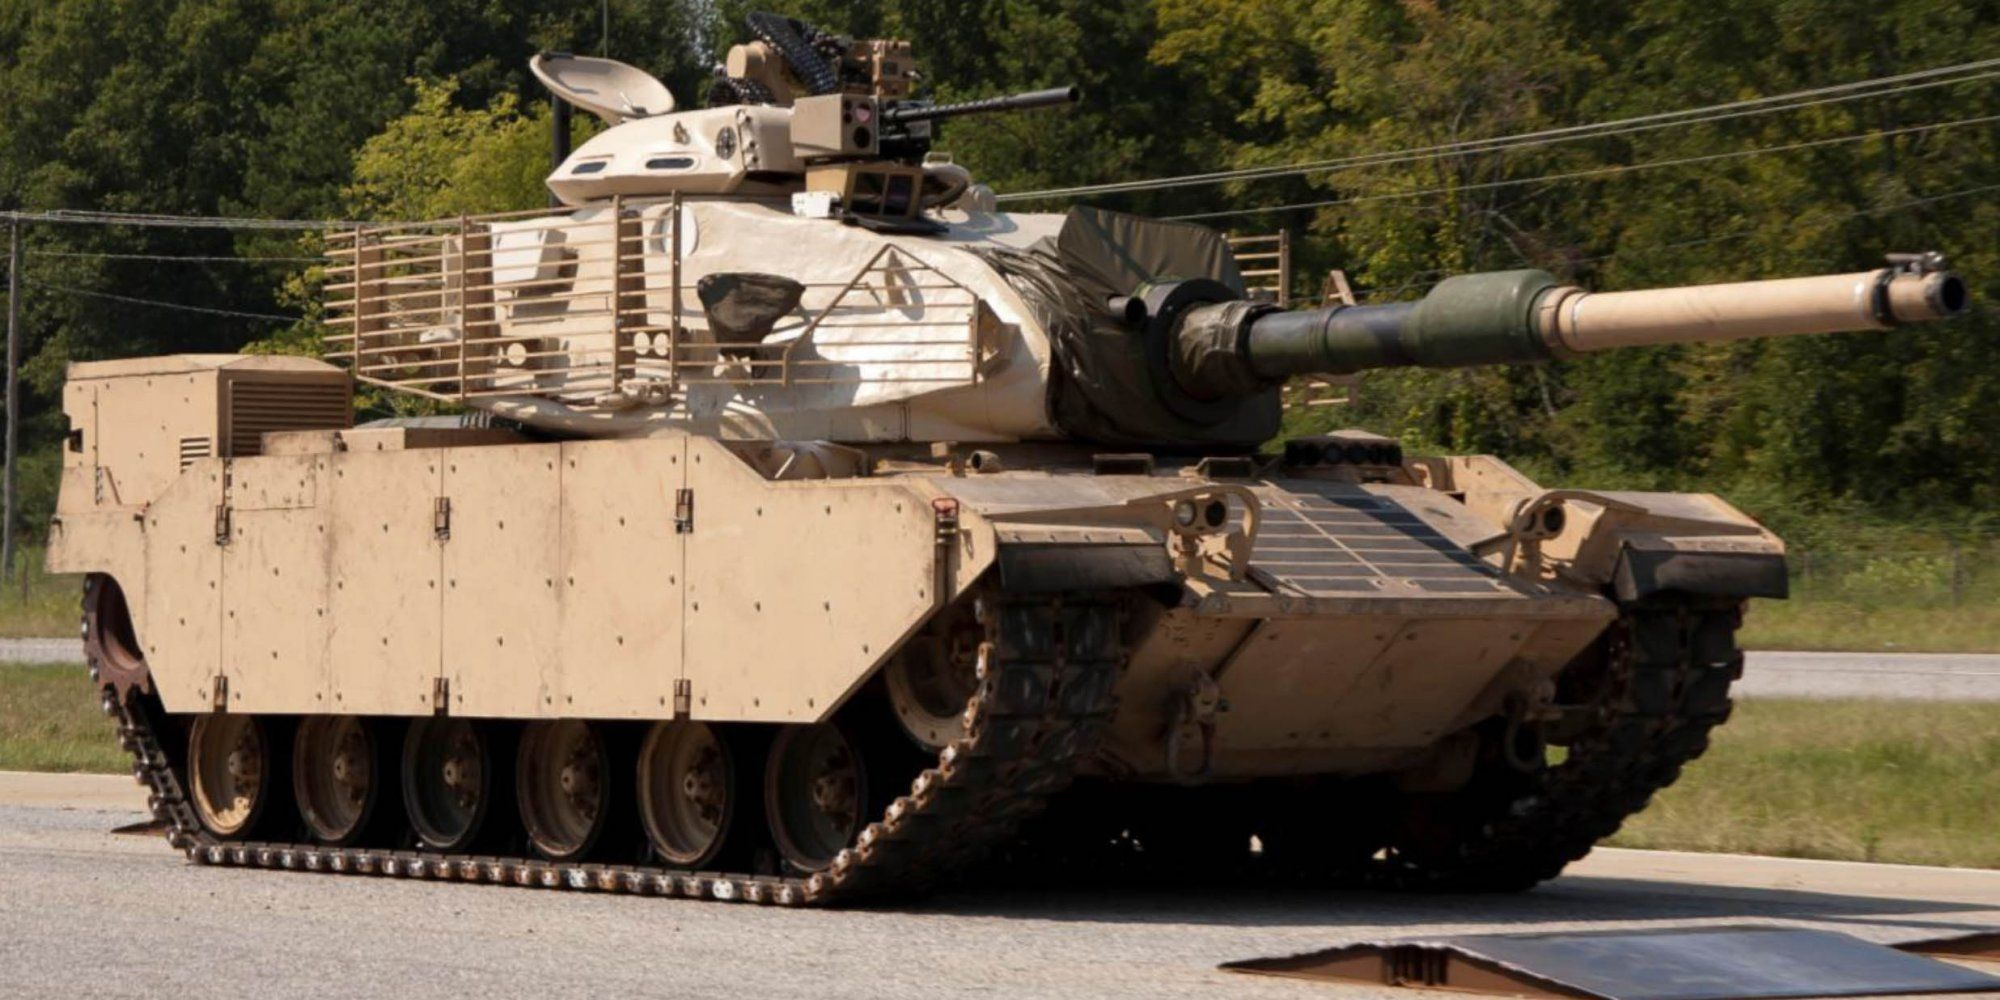 Here's What We Forgot About The American M60 Patton Main Battle Tank